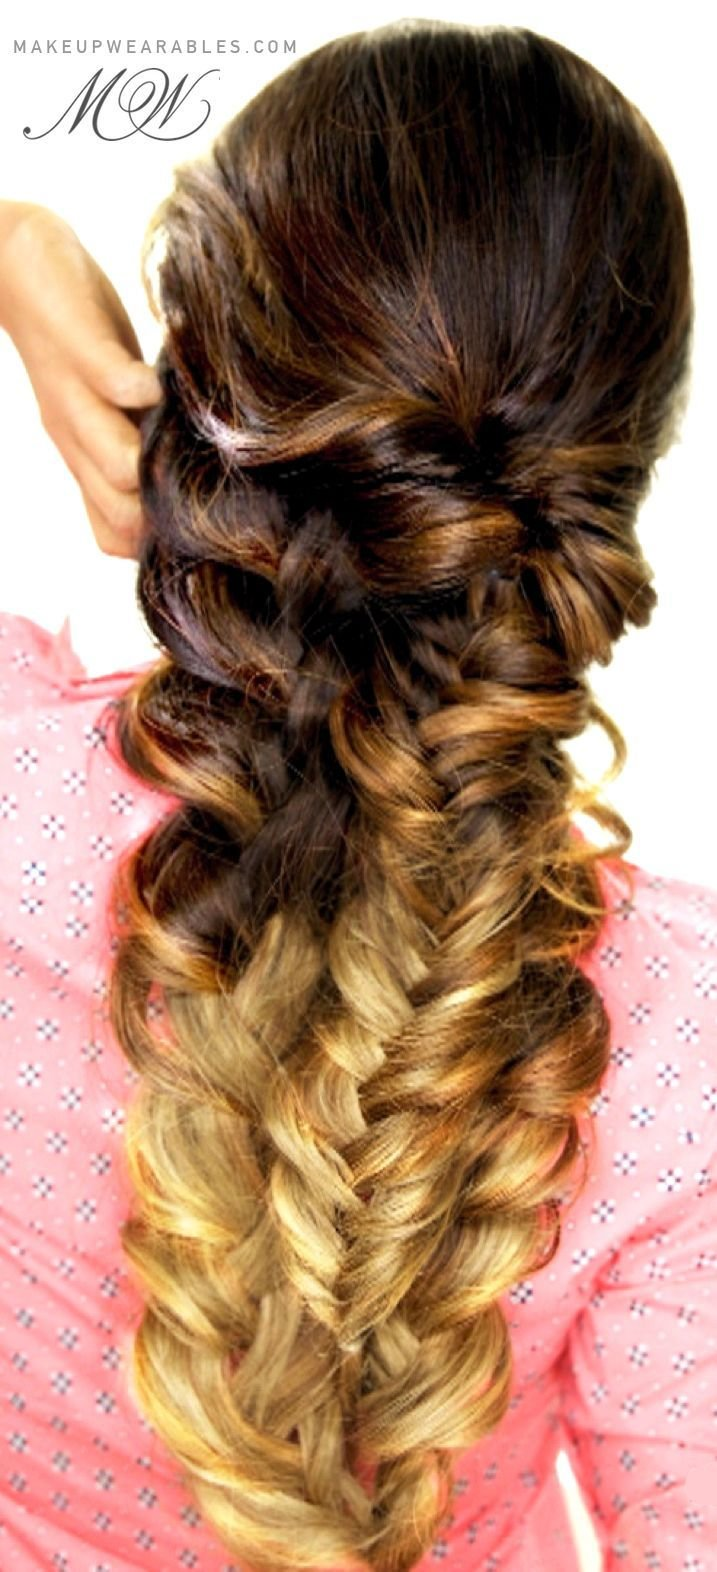 The Best Easy Topsy Tail Braid Hair Tutorial Cute Everyday Pictures